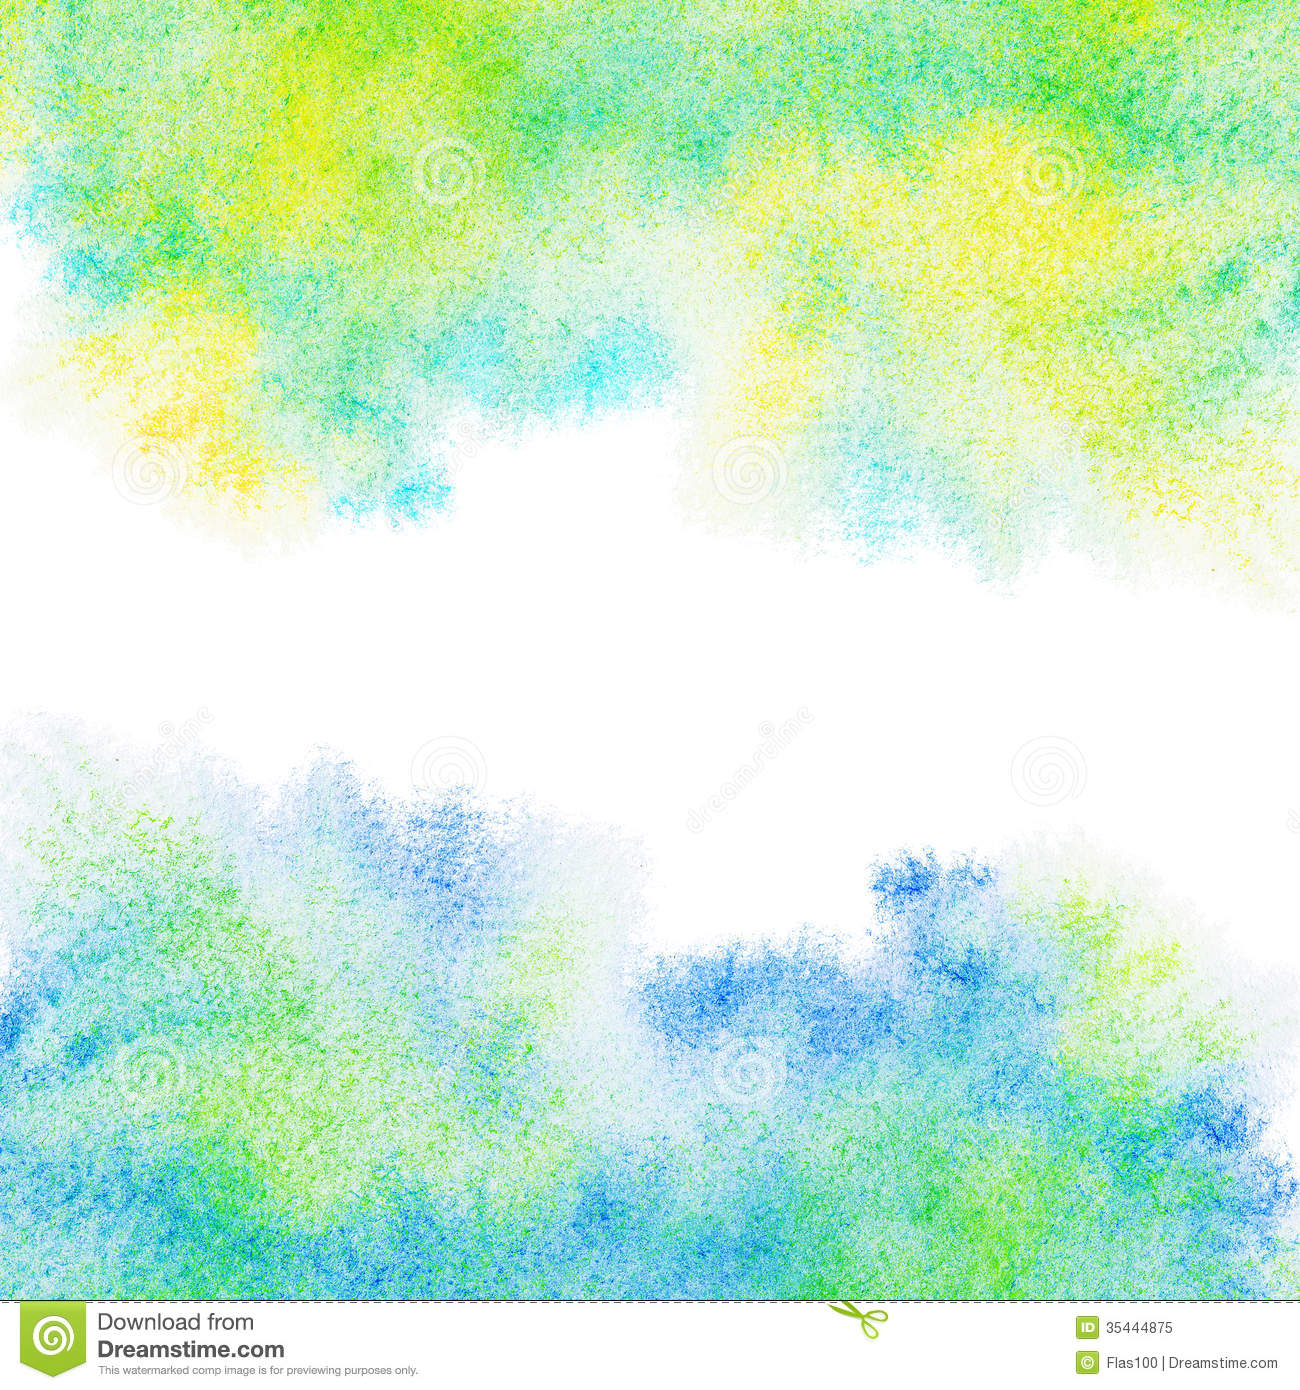 Download 84+ Background Blue Green And White Gratis Terbaru